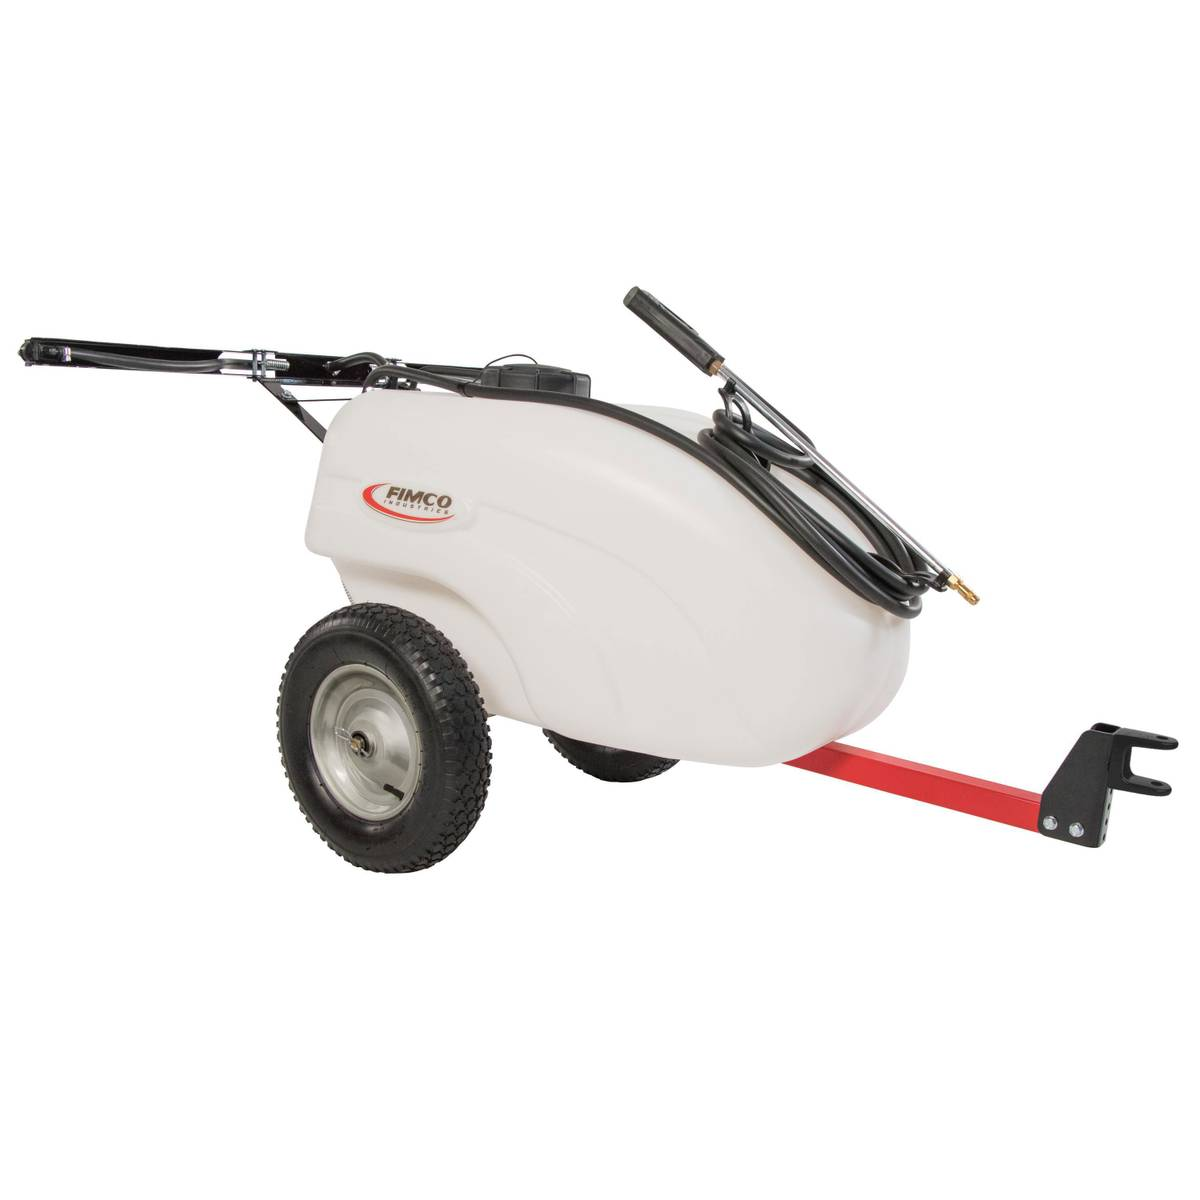 Fimco 30 Gallon Trailer Sprayer